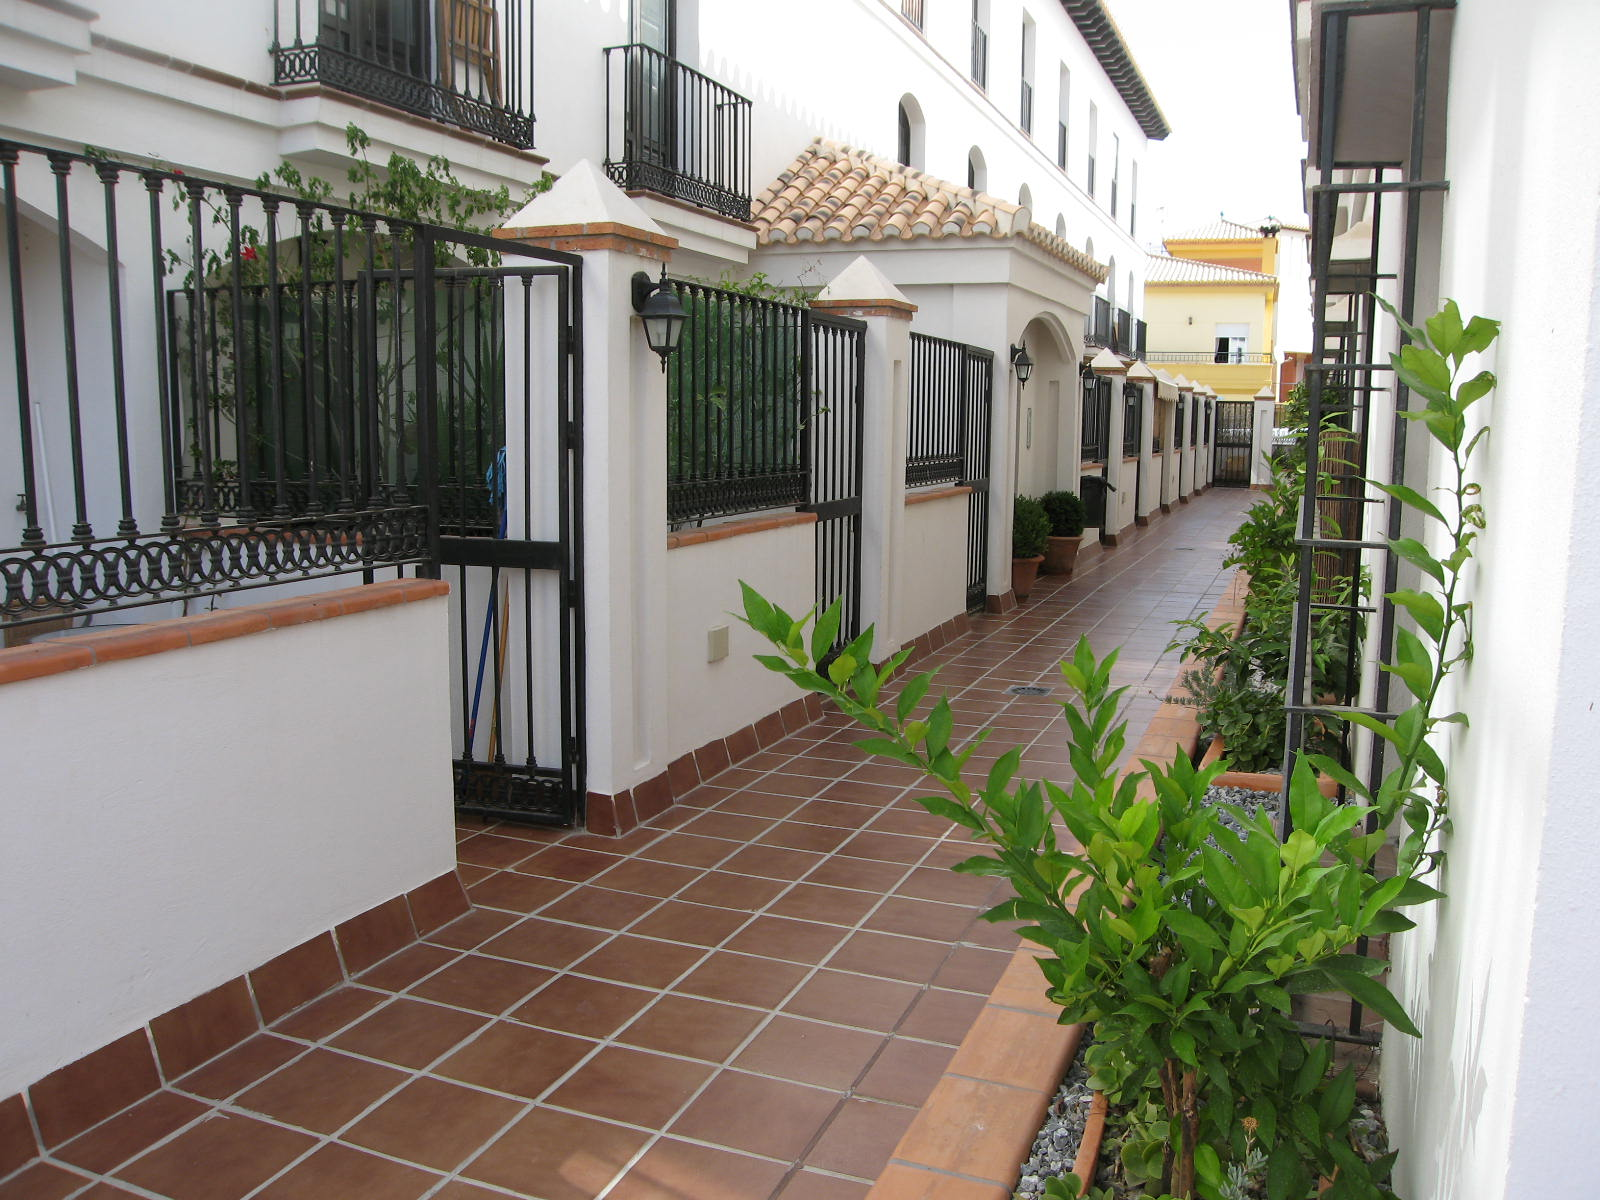 Apartment For Sale in Velez de Benaudalla Granada Spain